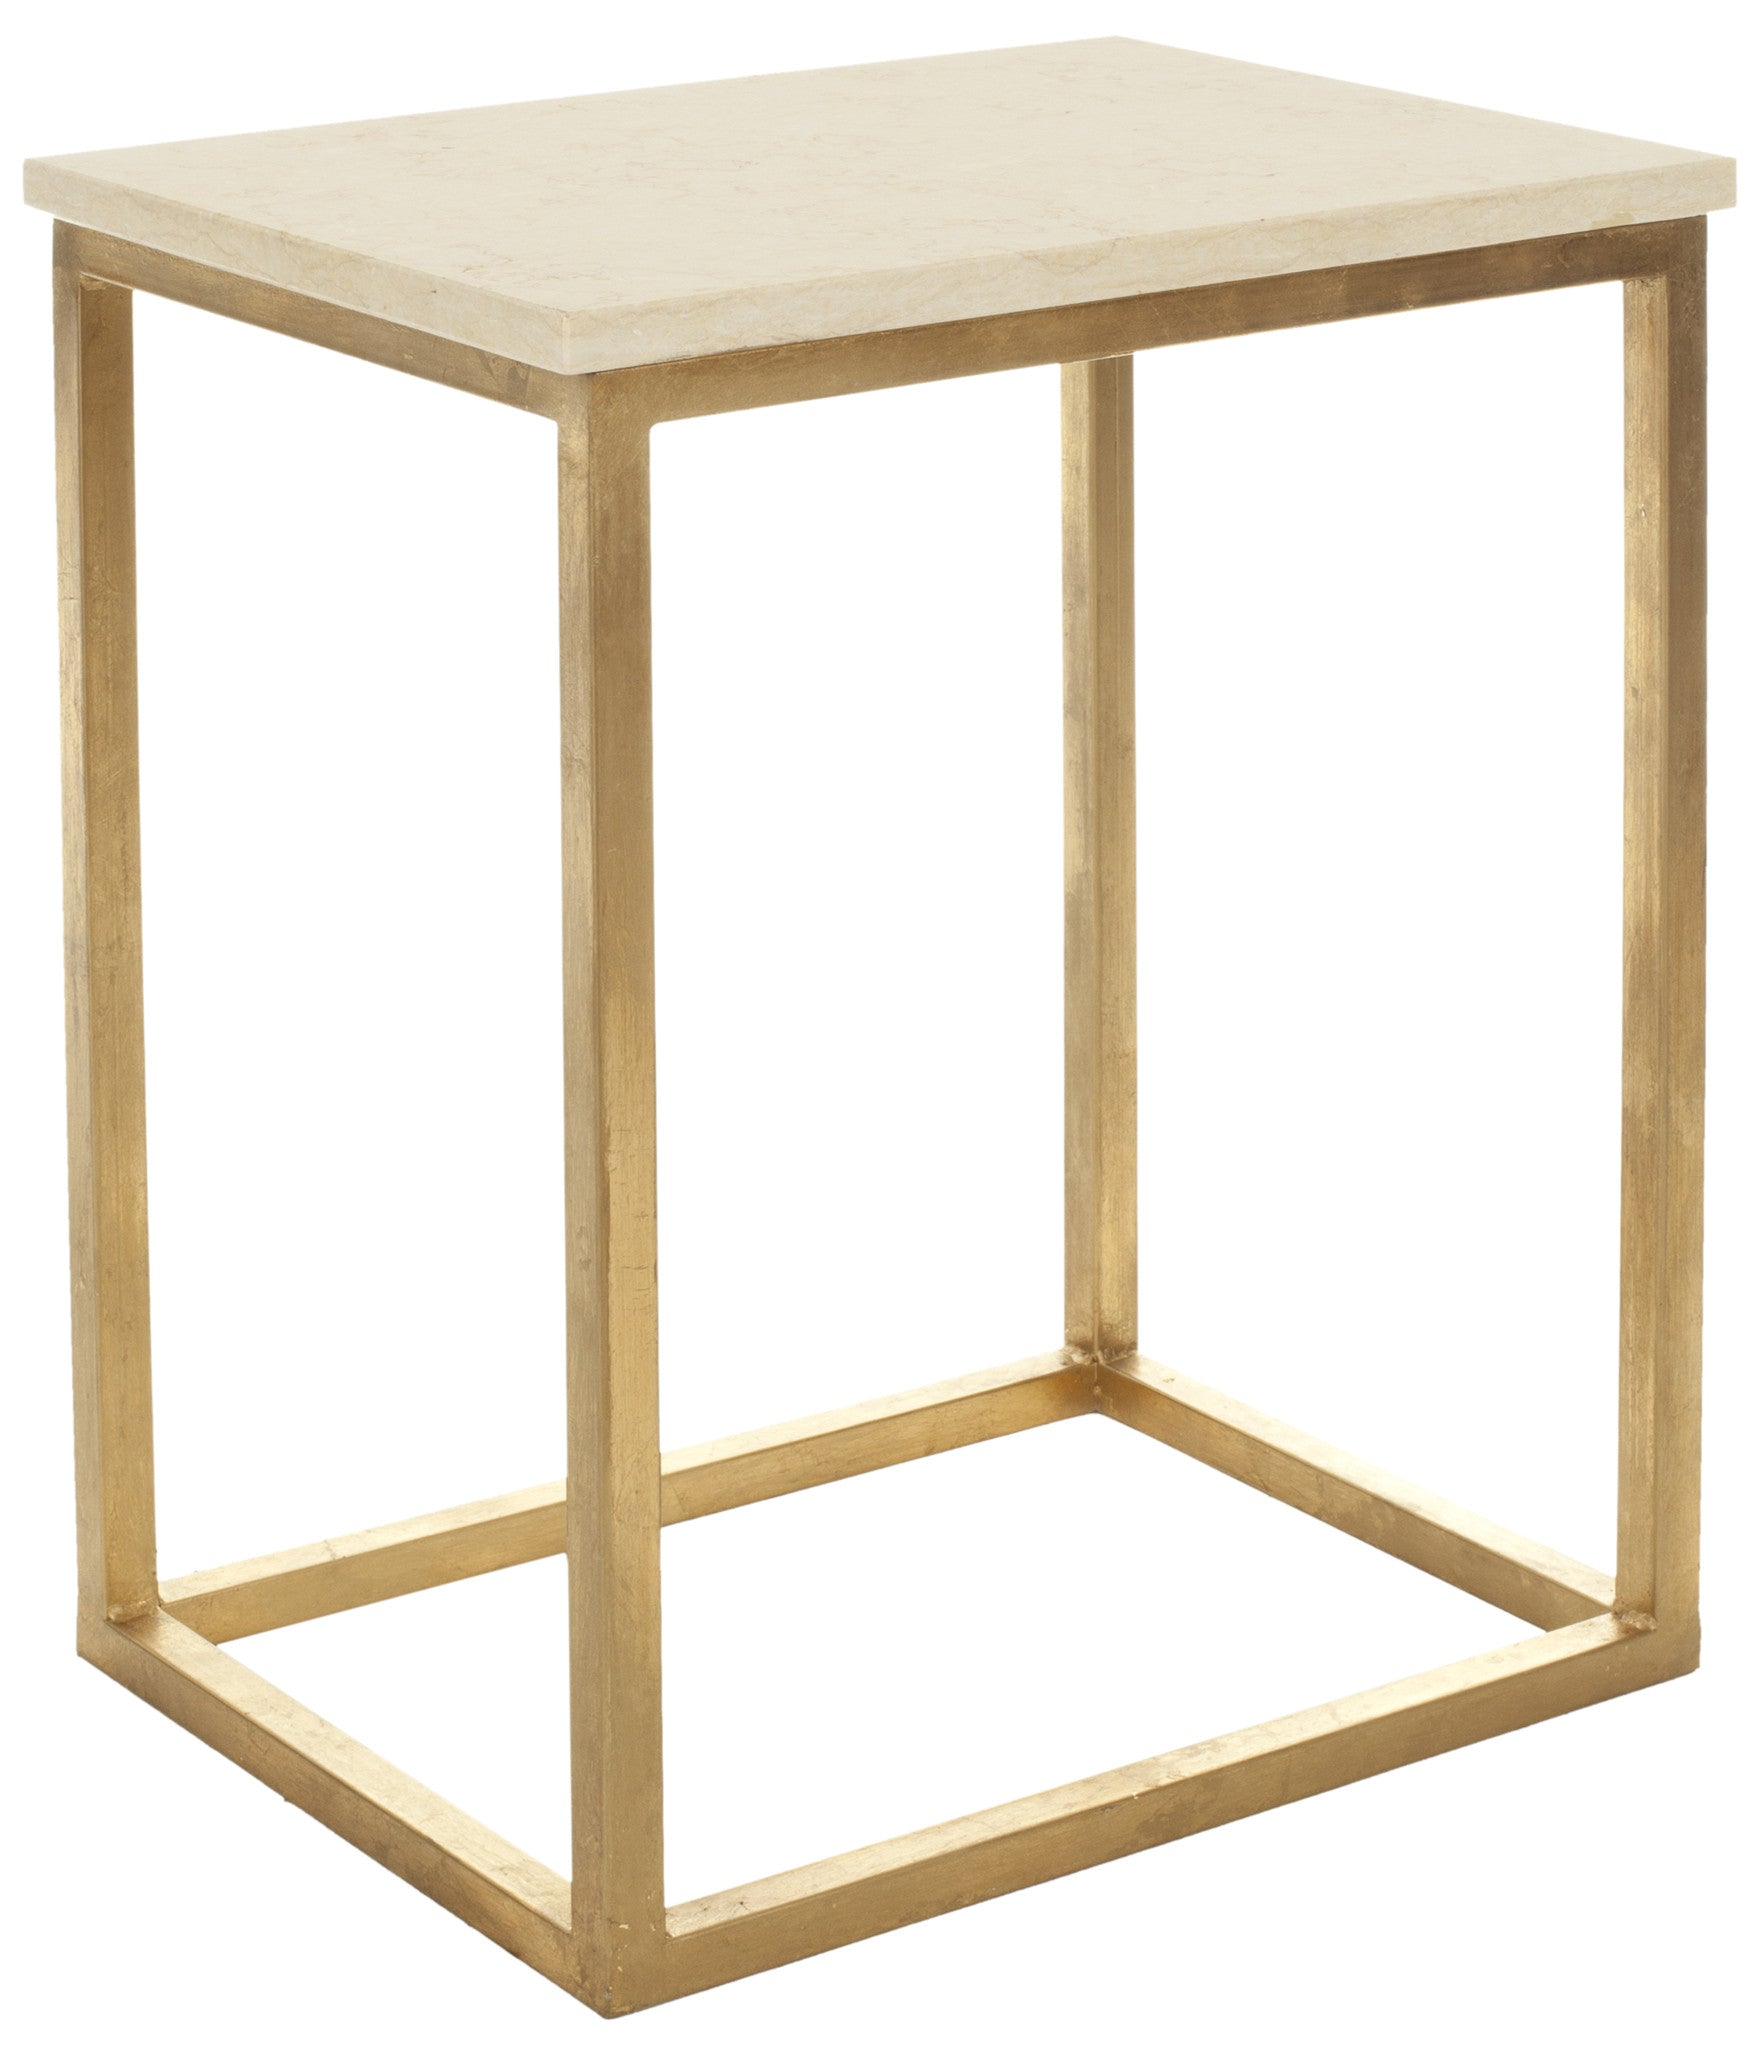 Phenomenal S Modishstore Com Products Safavieh Blanchard Ocoug Best Dining Table And Chair Ideas Images Ocougorg